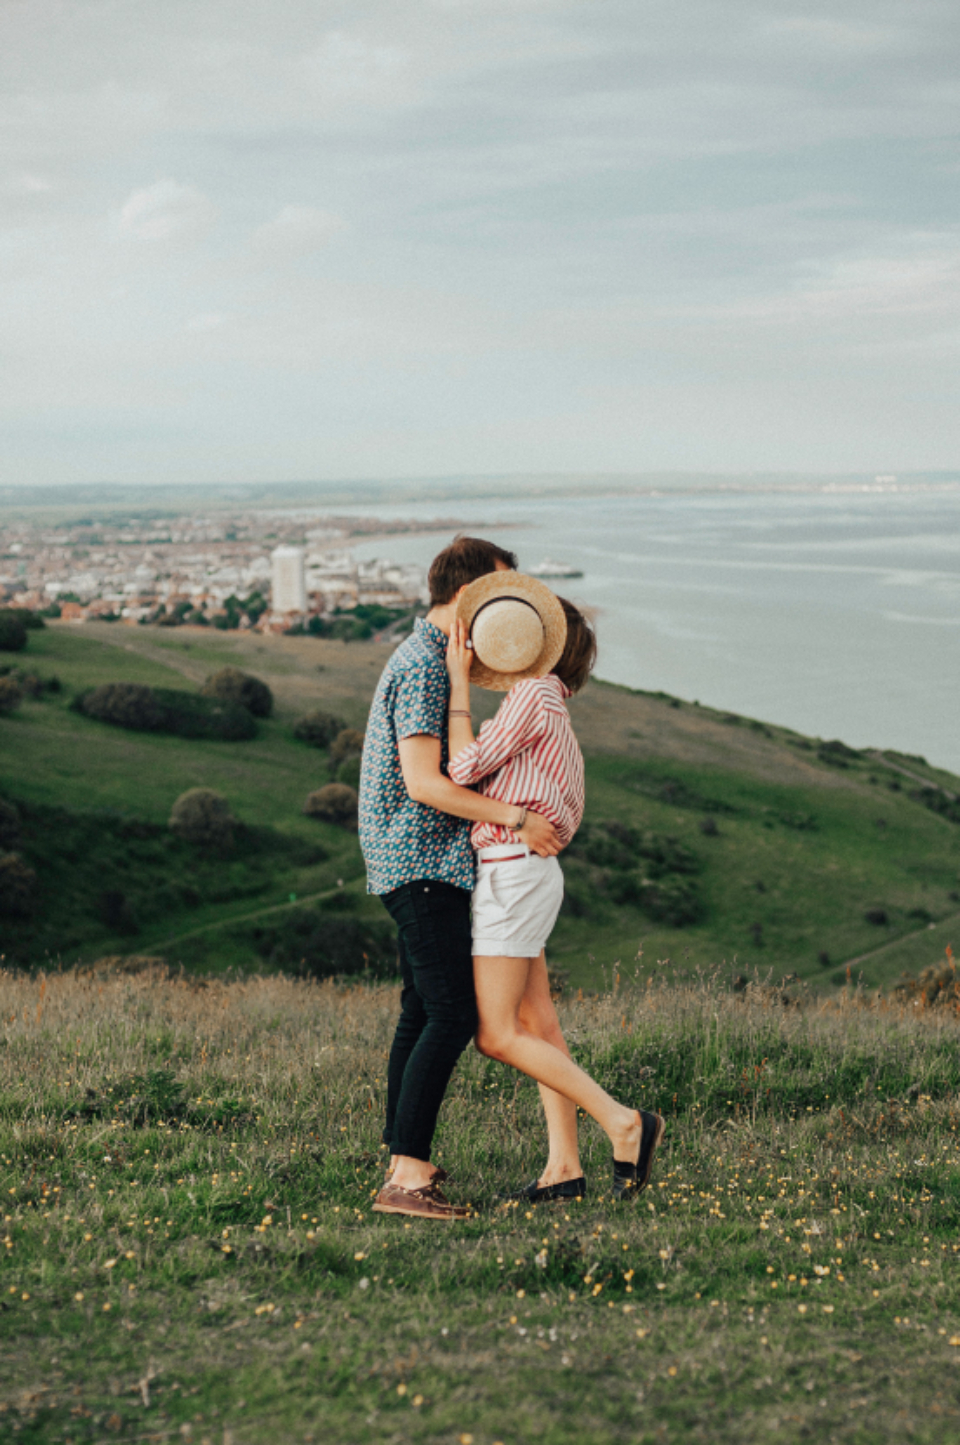 man woman kiss hat cover hidden landscape sea view sky clouds shorts male female girl